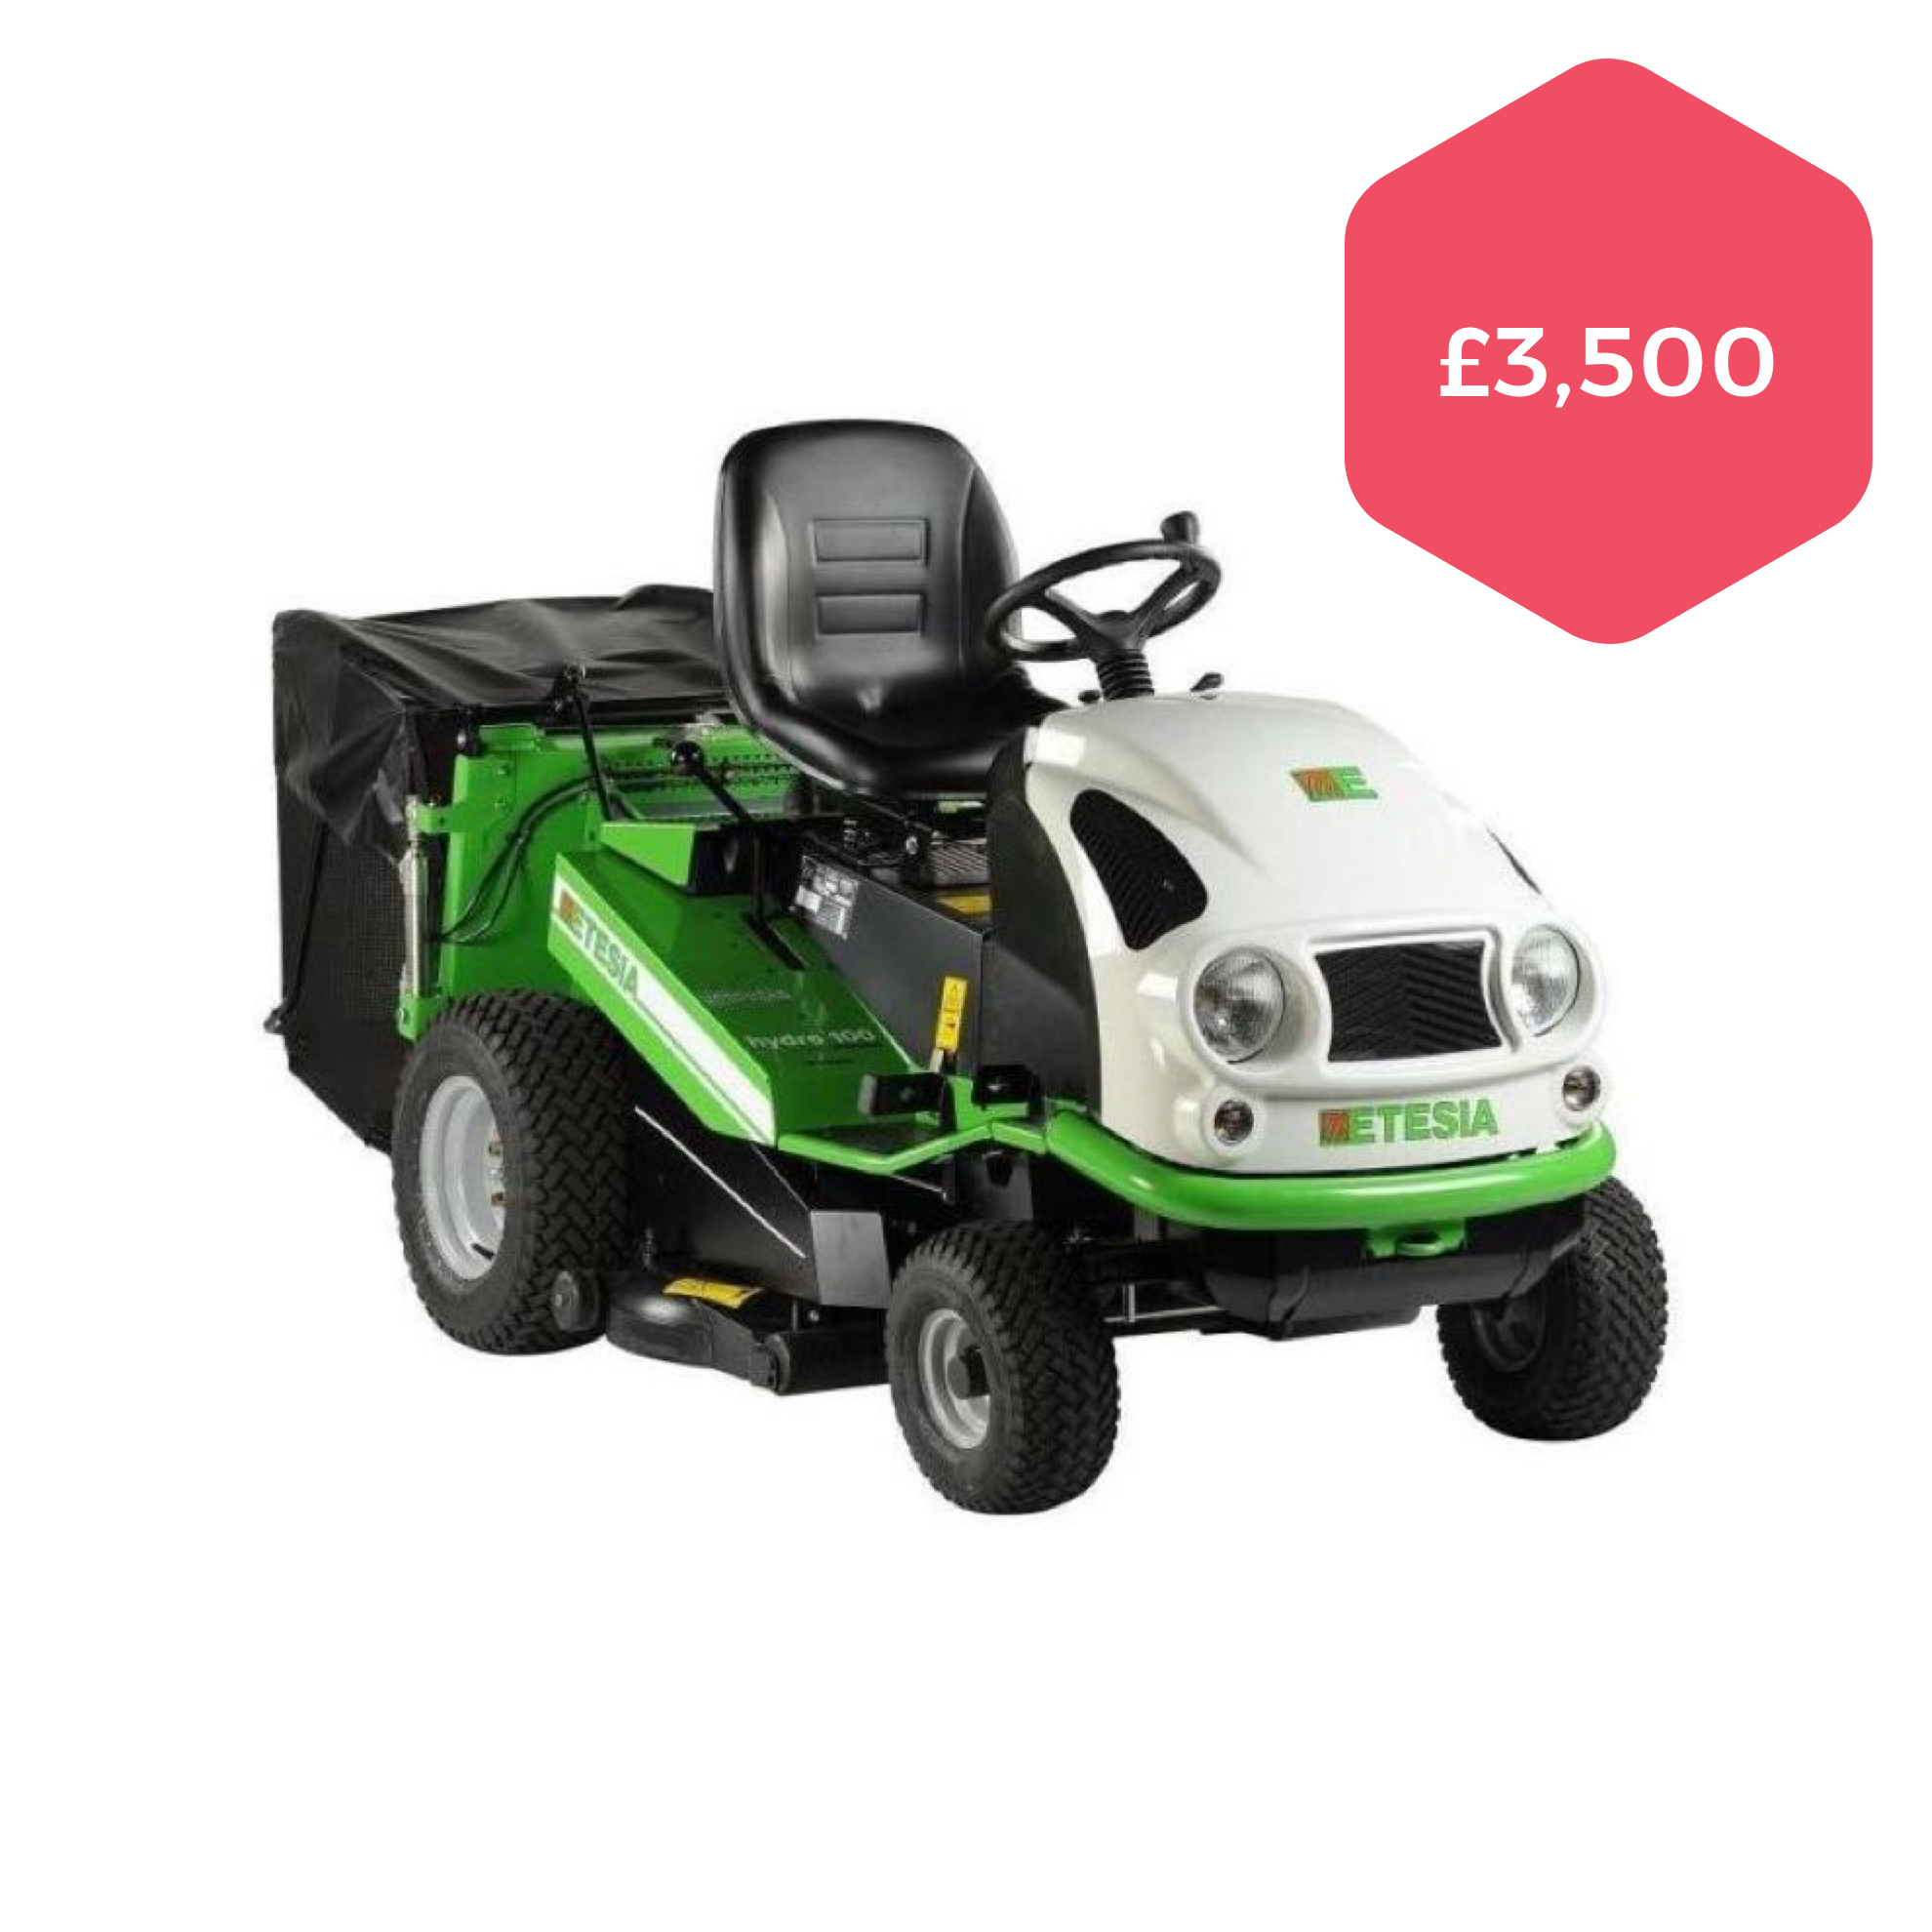 Used Etesia MVEHH Hydro 100 Anti-clog Cut and Collect